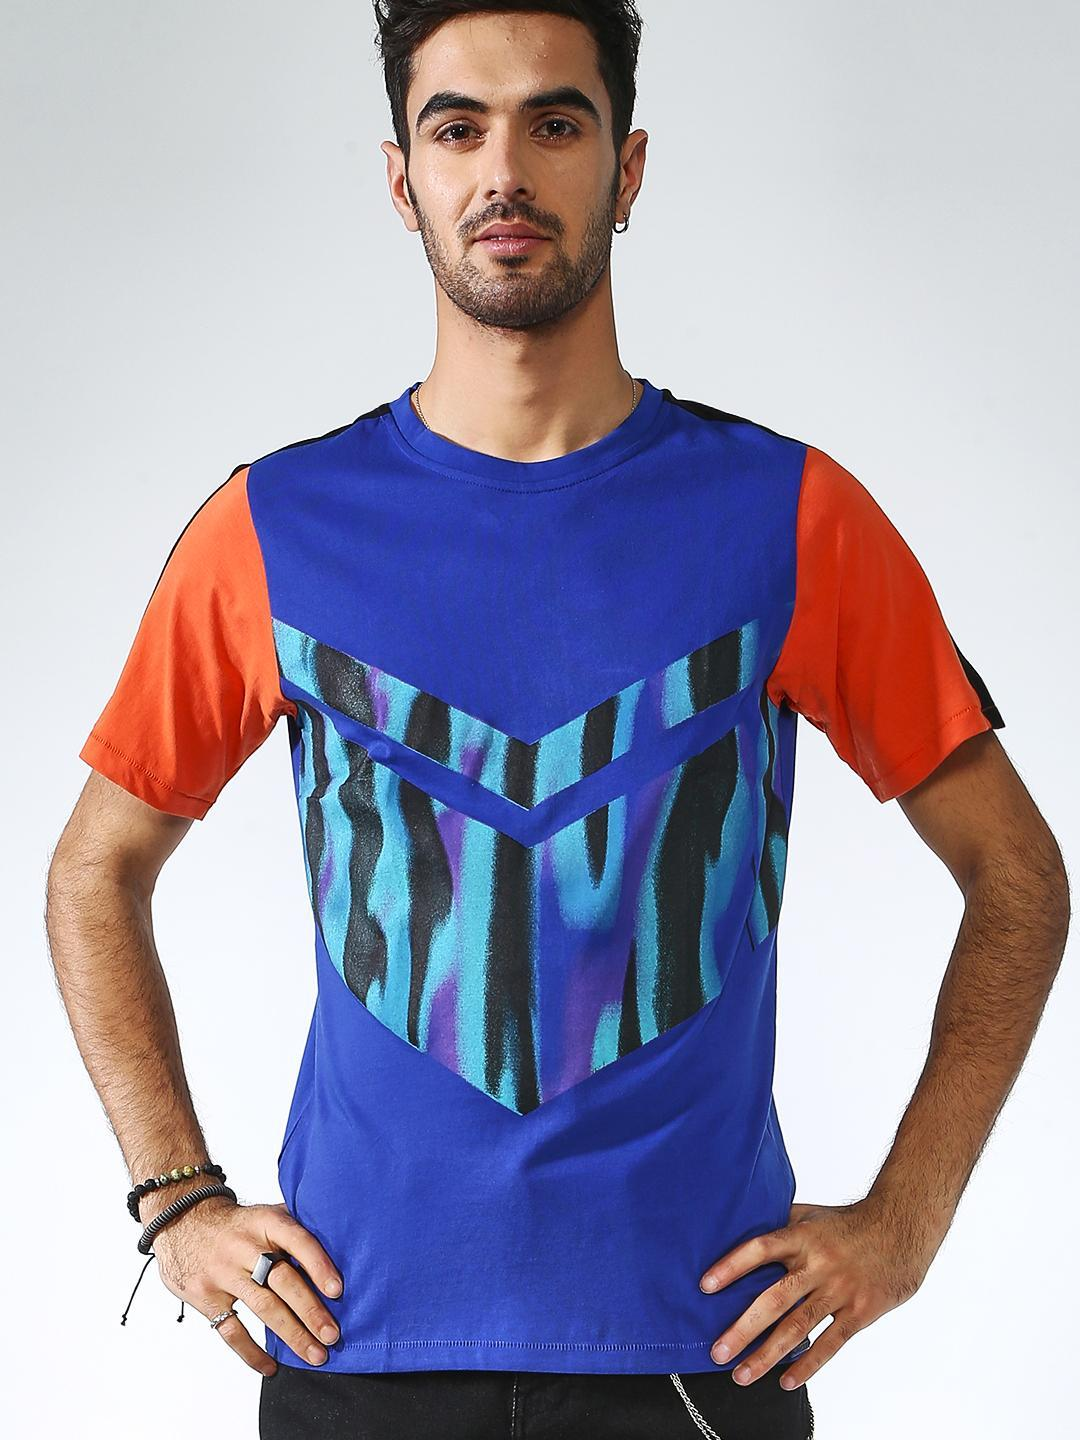 IMPACKT Multi Color Block Abstract Print T-shirt 1